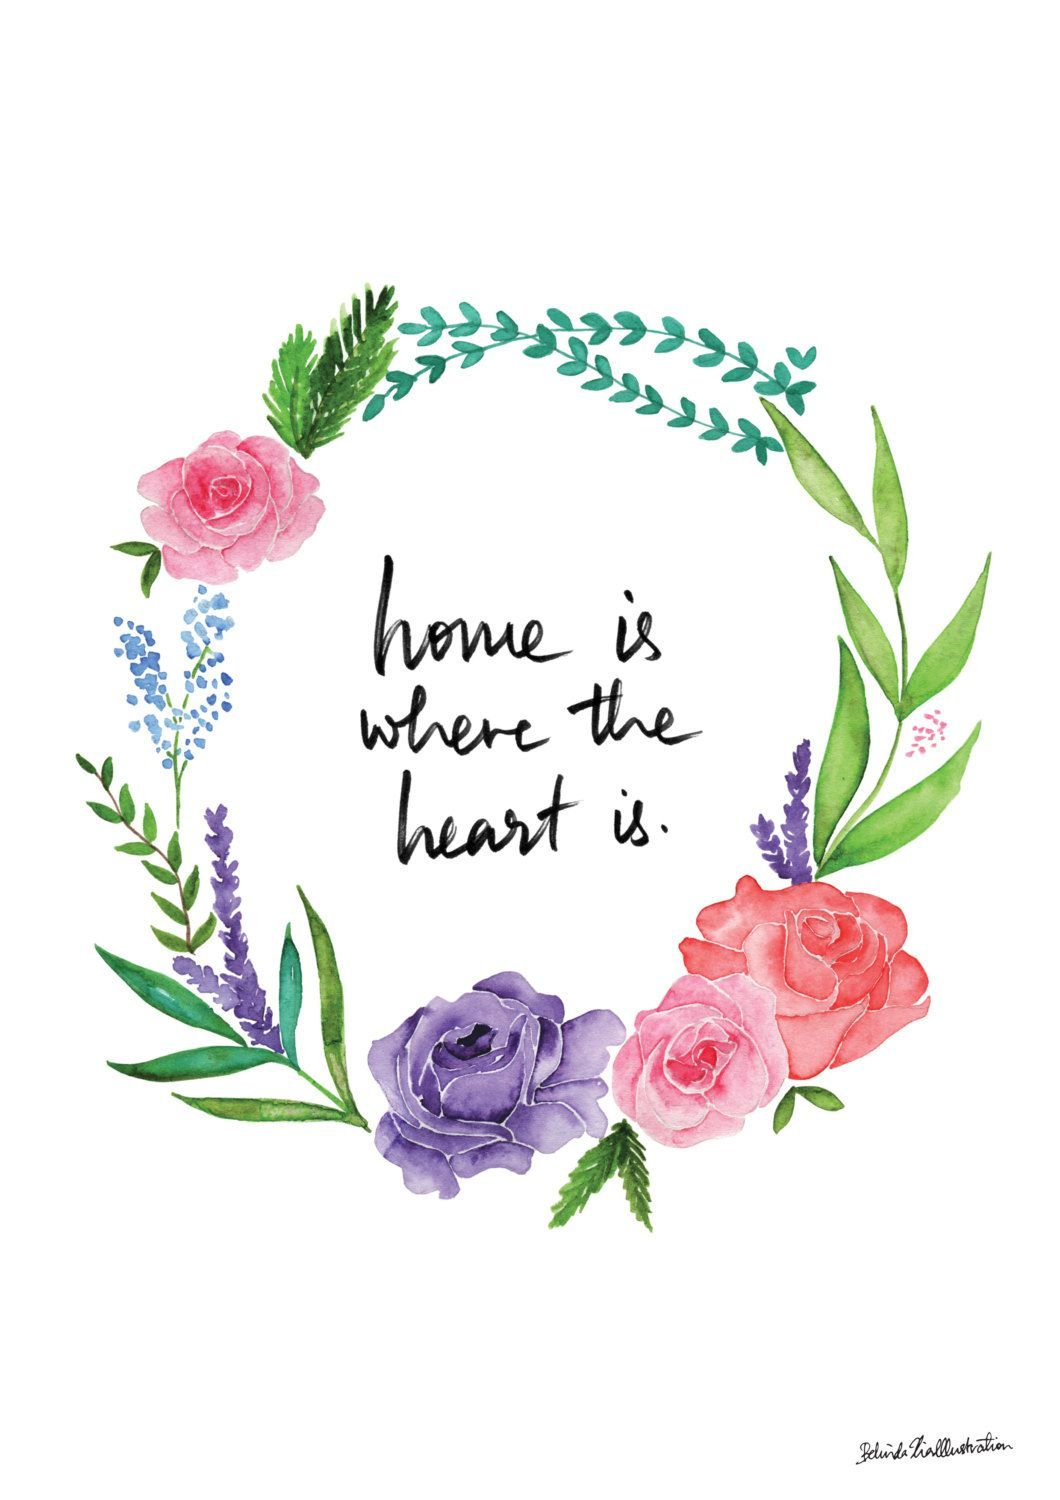 Ev kalbinin oldu u yerdedir duvara kar lacak resim for Wallpaper home is where the heart is